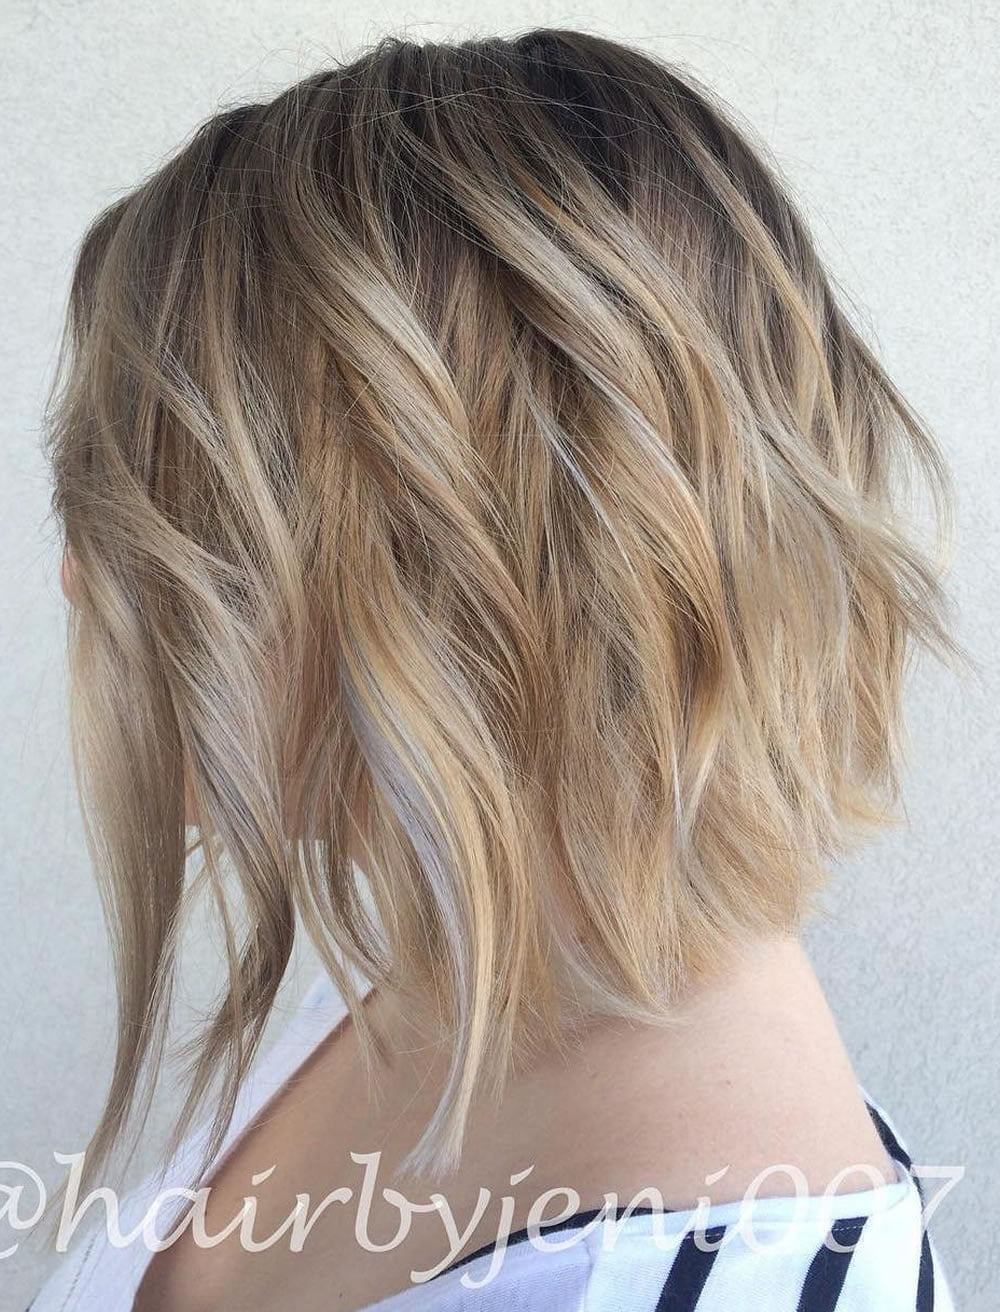 Easy Medium Length Haircuts For Women 2019 Page 2 Of 6